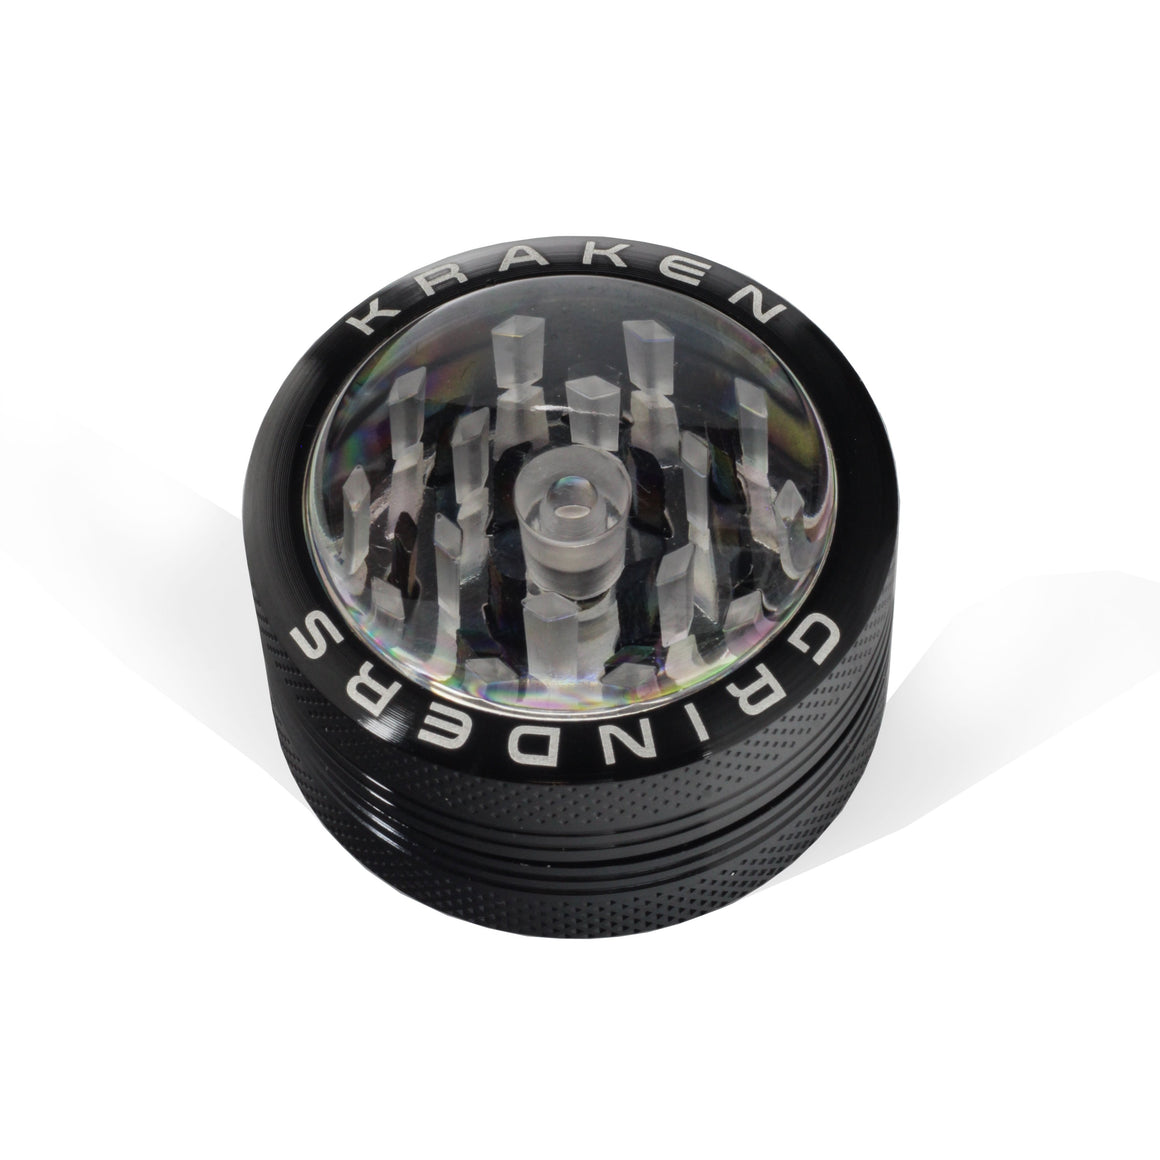 Image of a Black Kraken Grinder 2-Piece and clear top Closed